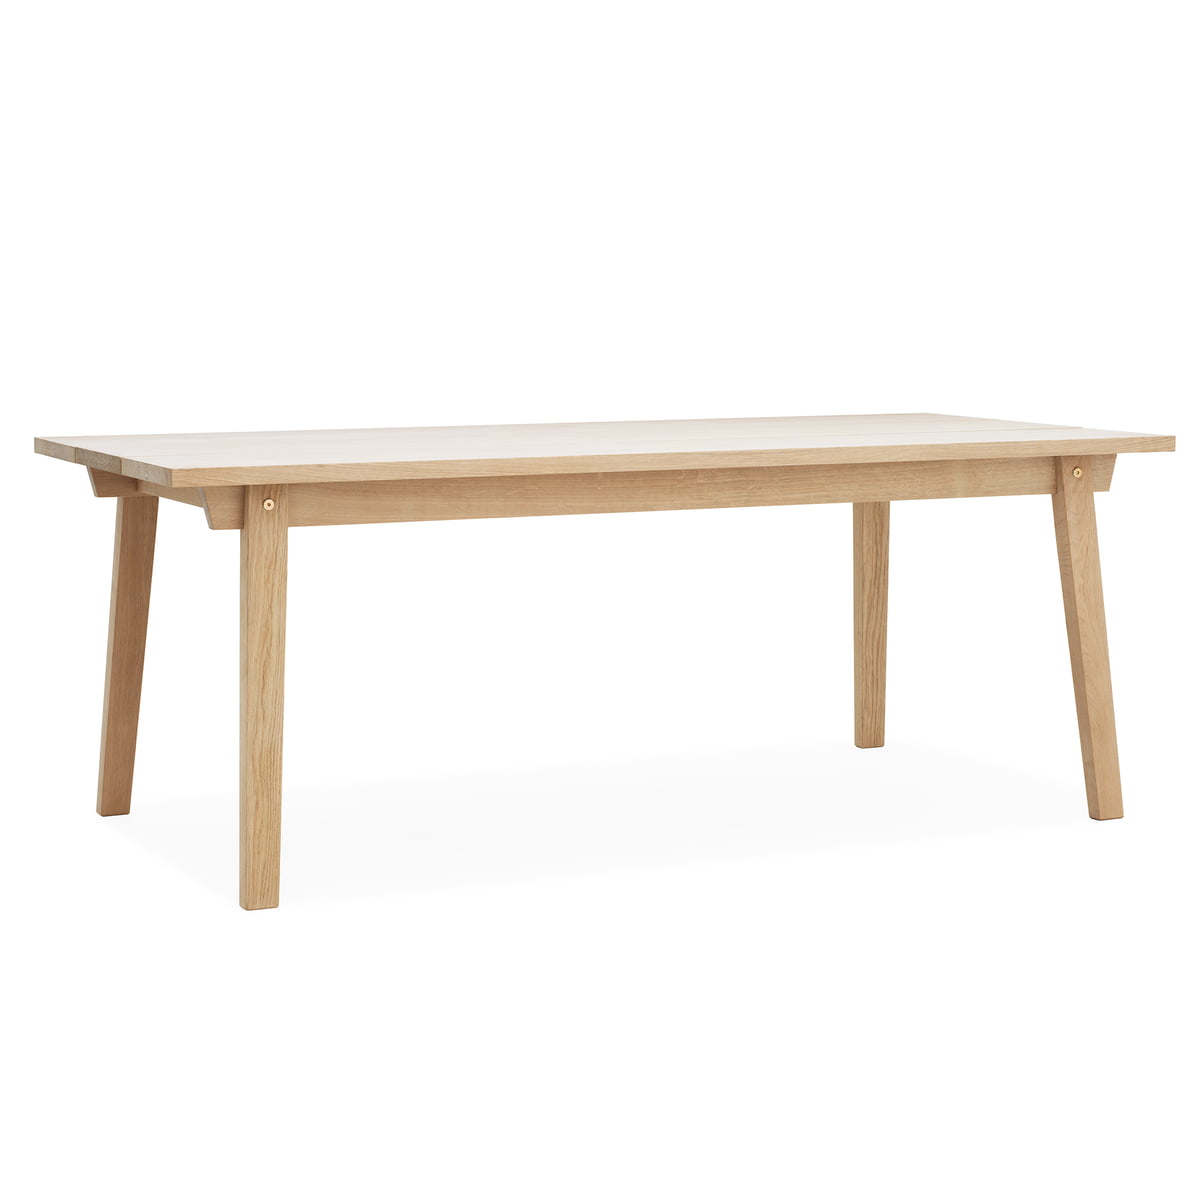 Slice table wood normann copenhagen for Barhocker normann copenhagen